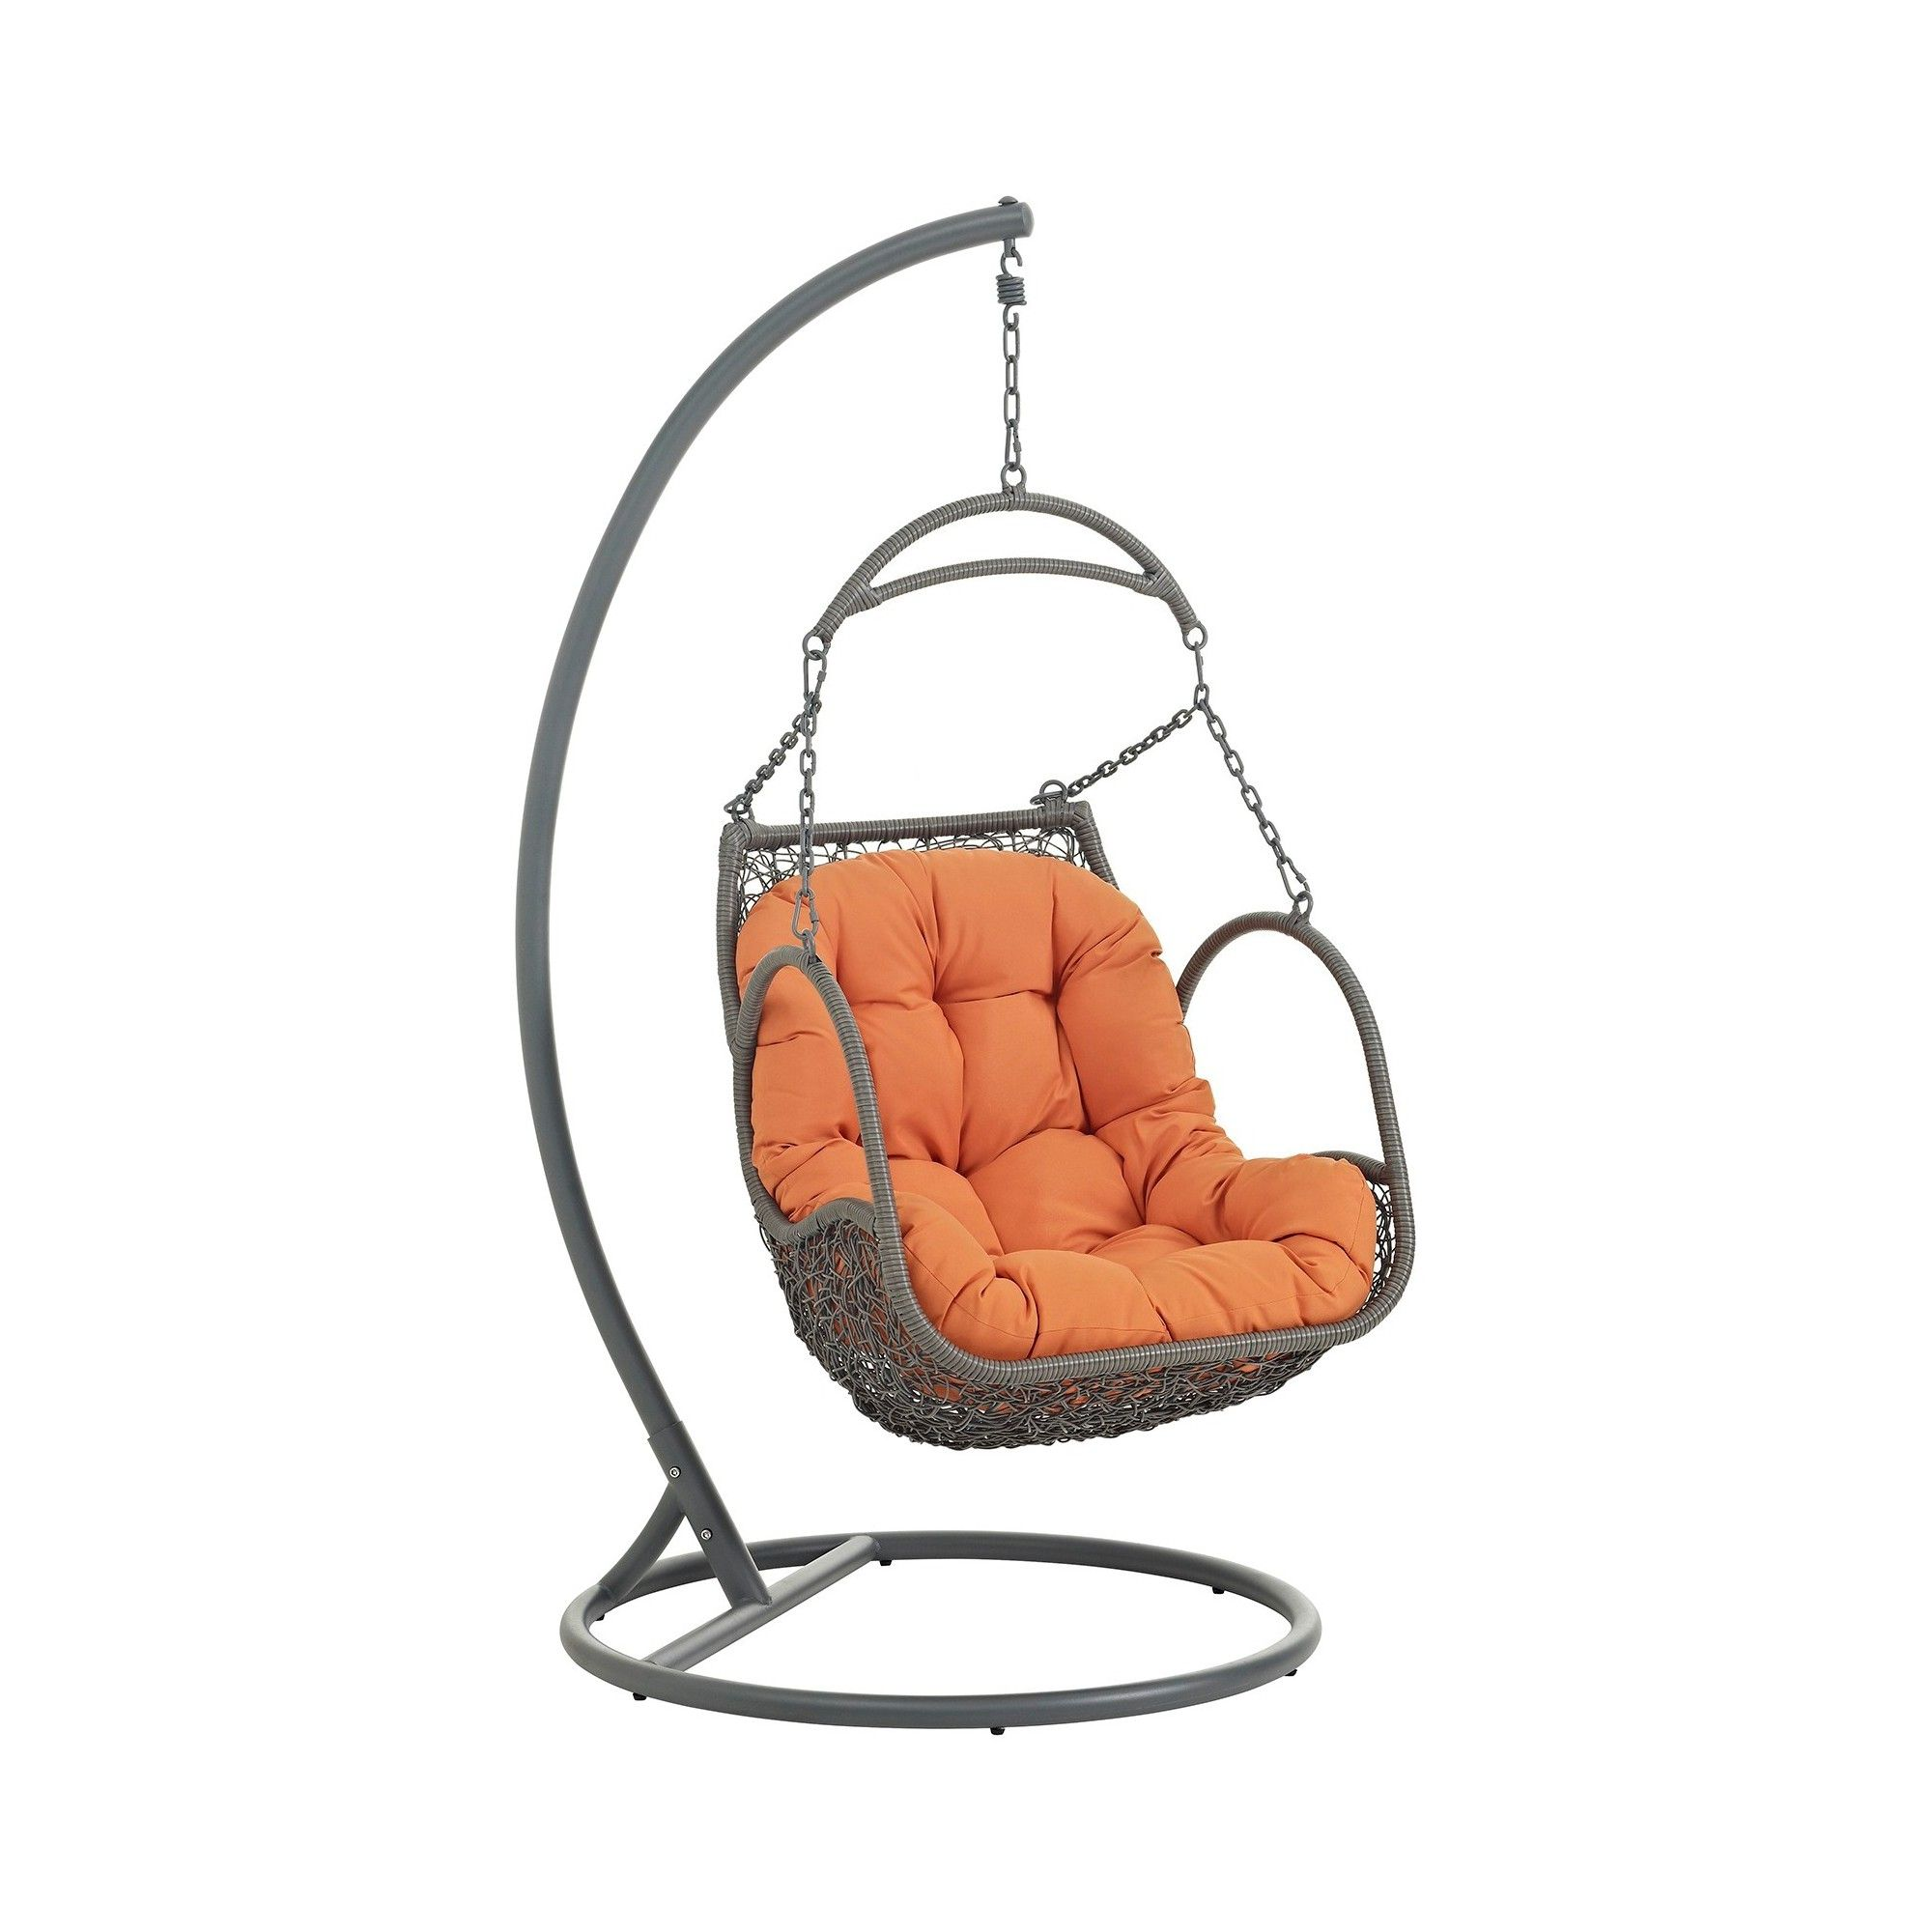 Arbor outdoor patio wood swing chair in orange modway wood swing